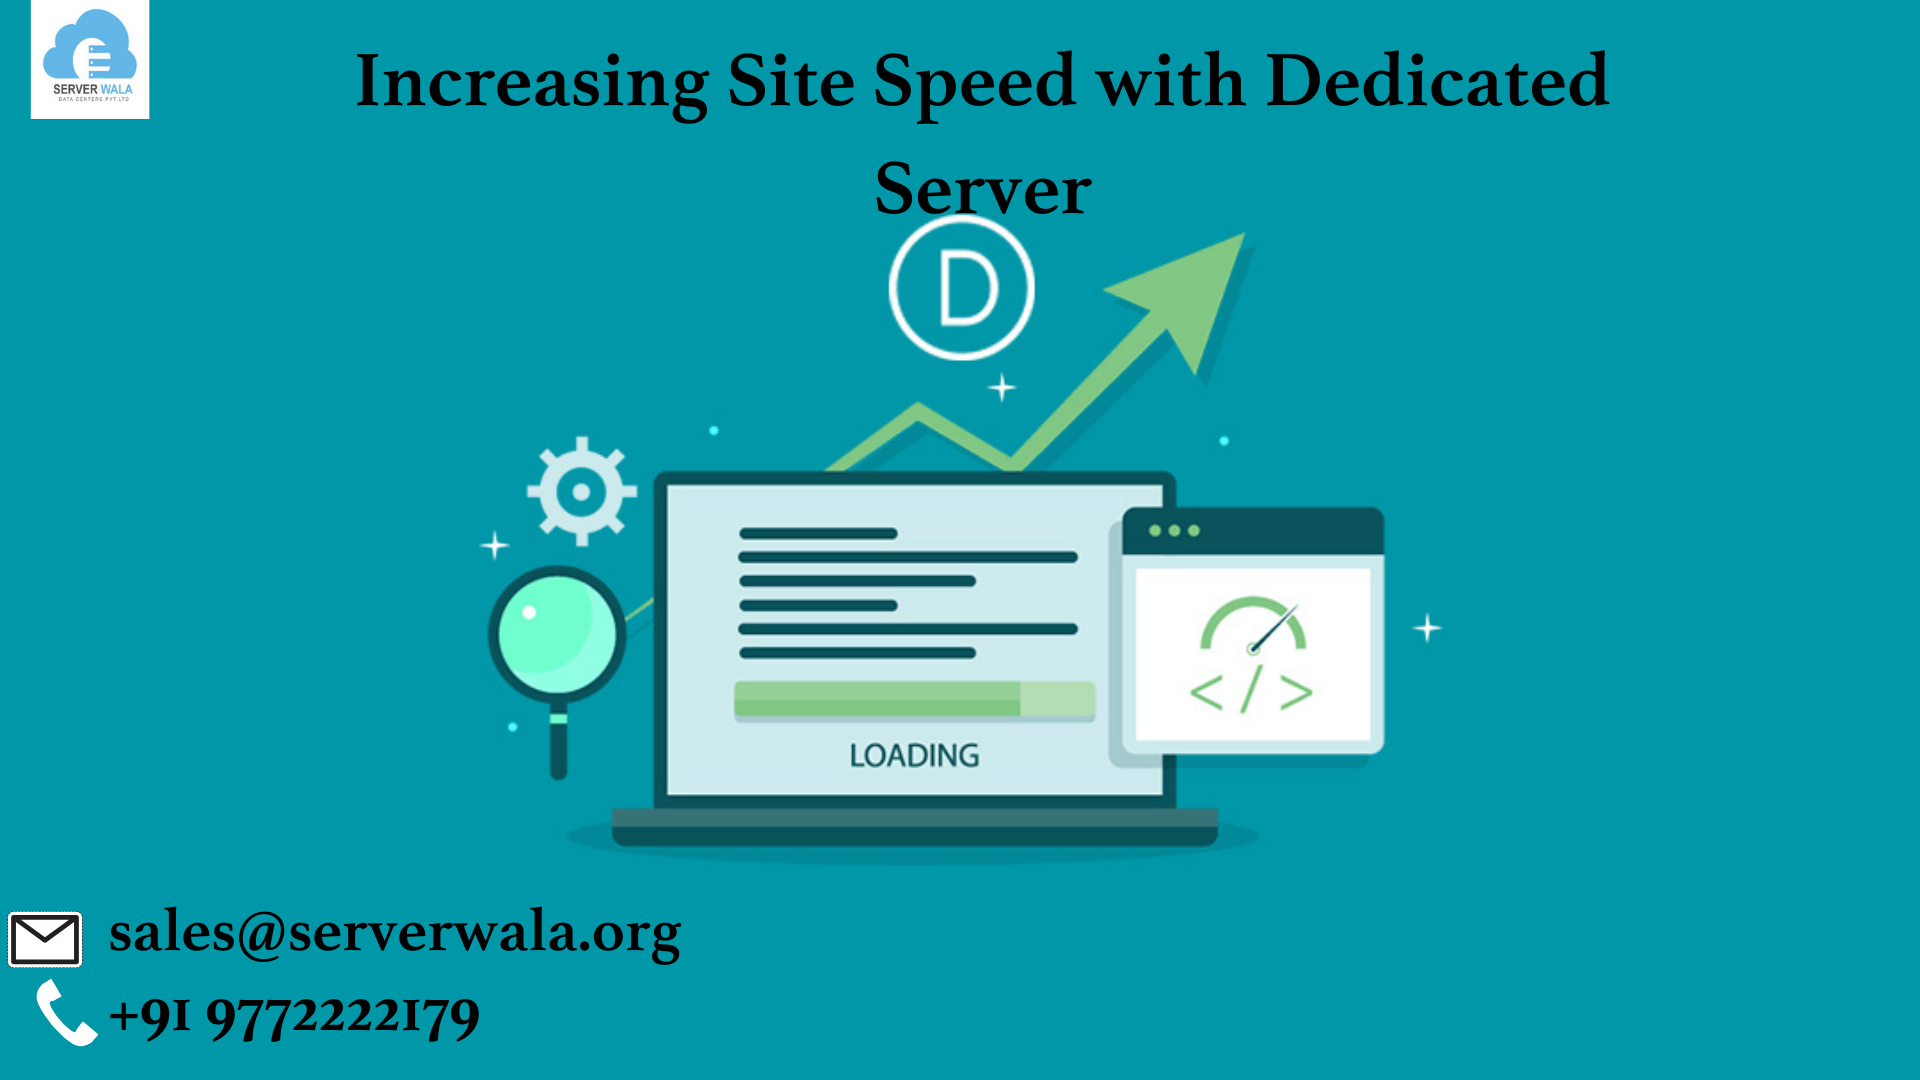 Increasing Site Speed with Dedicated Server